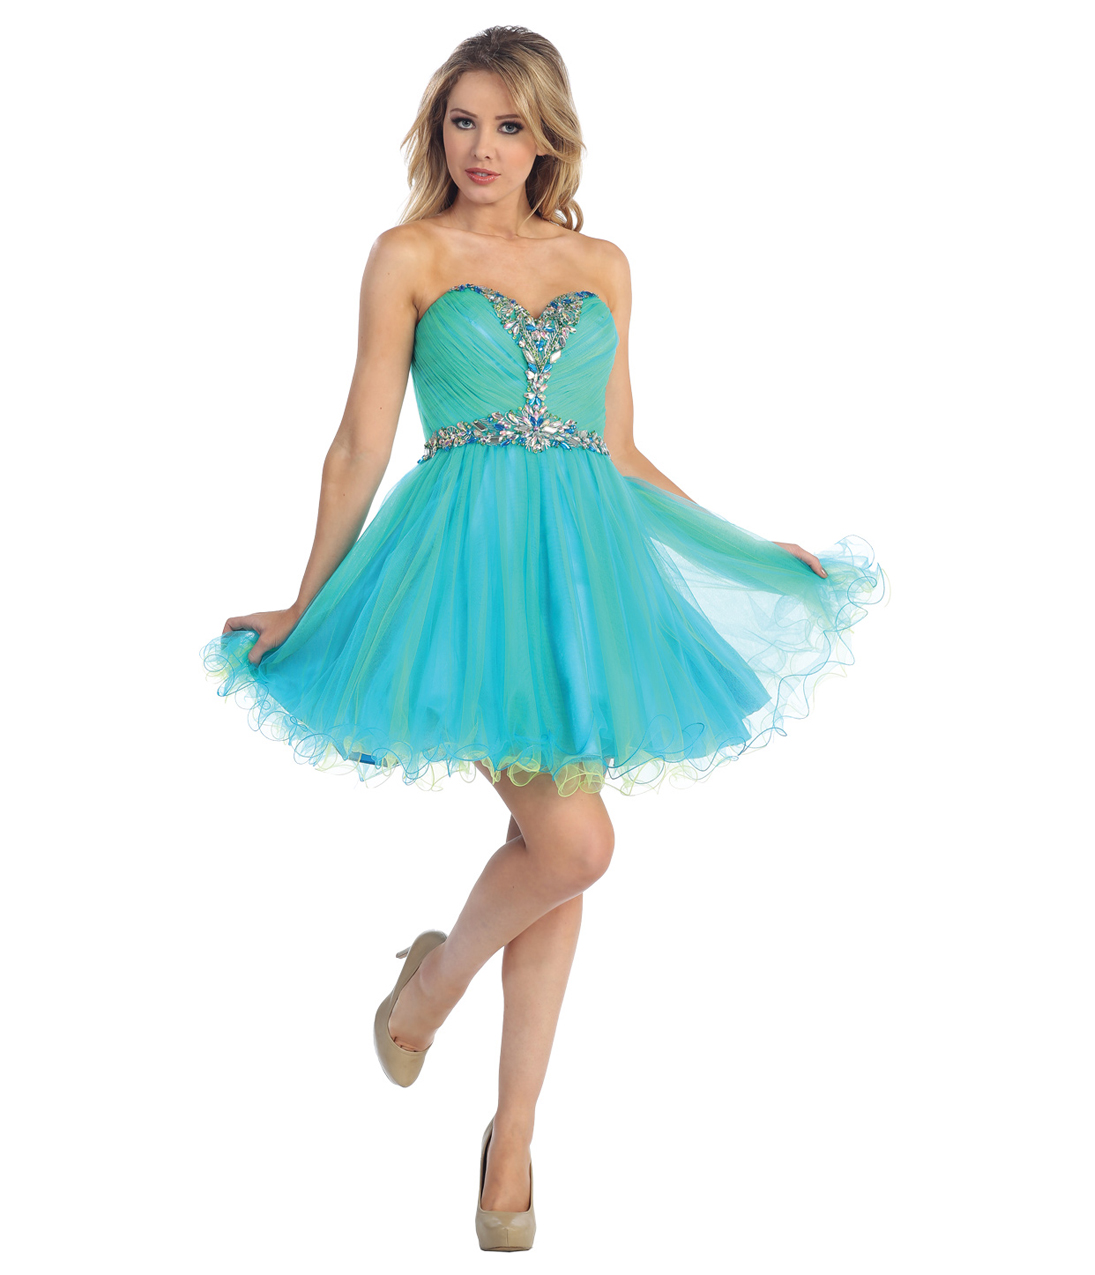 Turquoise Prom Dresses  Dressed Up Girl